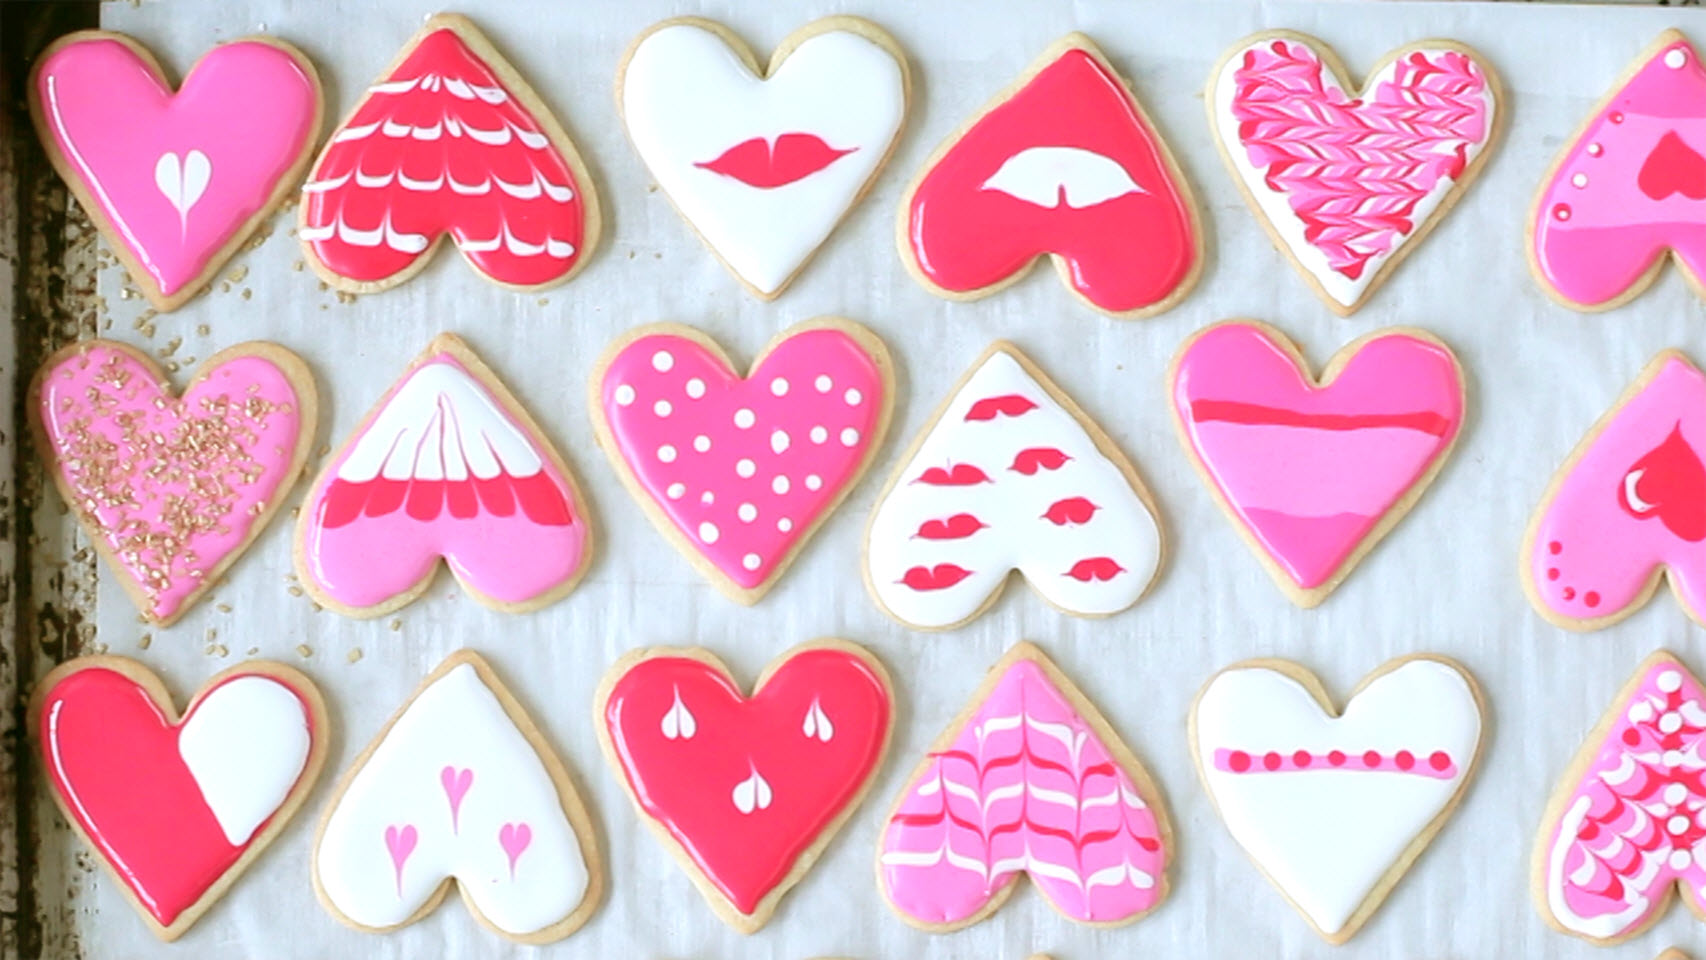 overhead view of heart shaped cookies decorated with red, pink, and white royal icing for valentine's day